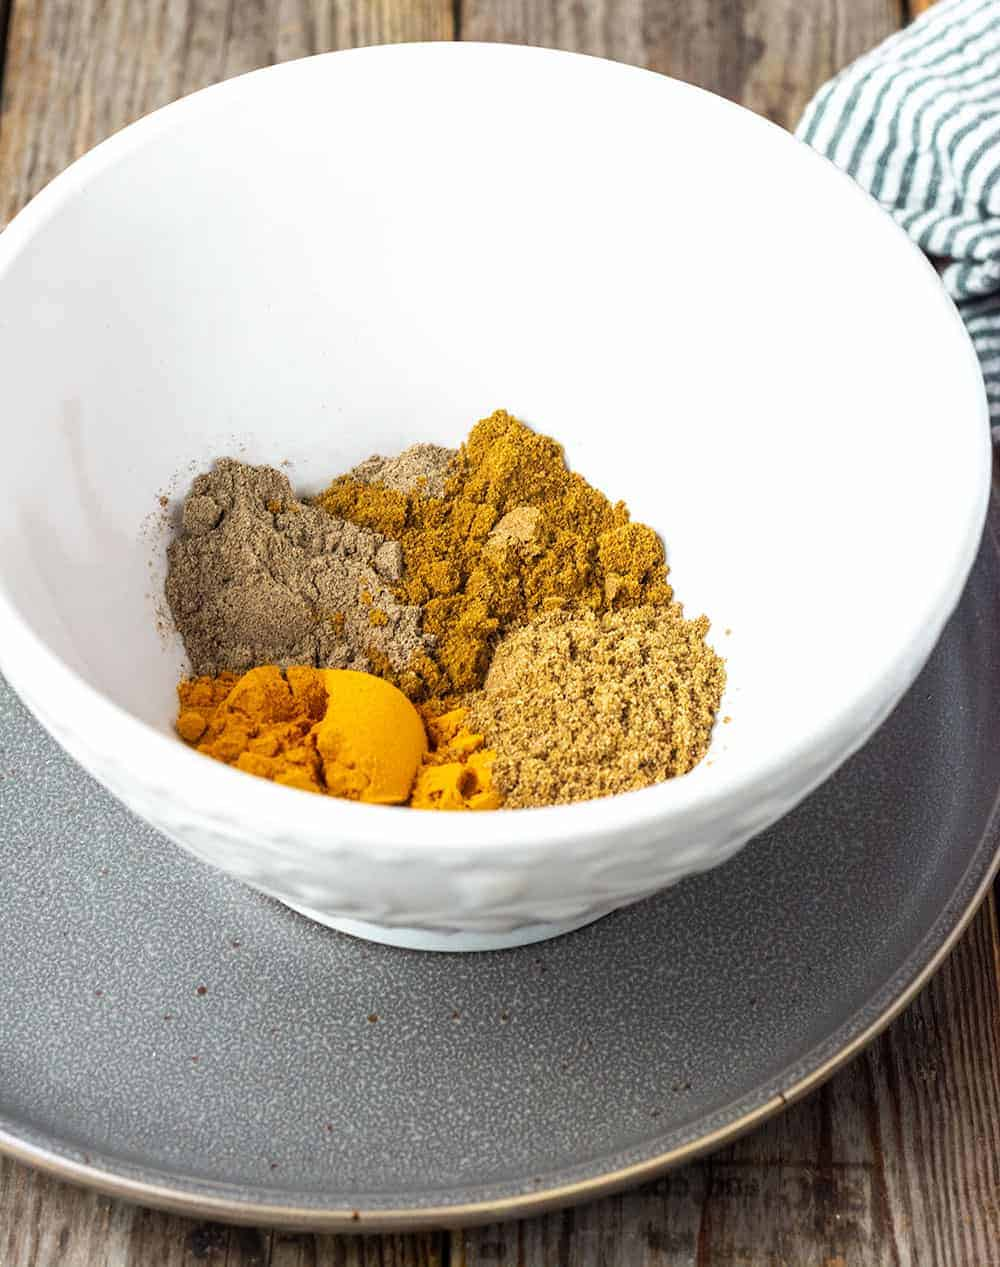 Curry powder ingredients in a white bowl, turmeric, coriander, cardamom and cumin in a white bowl